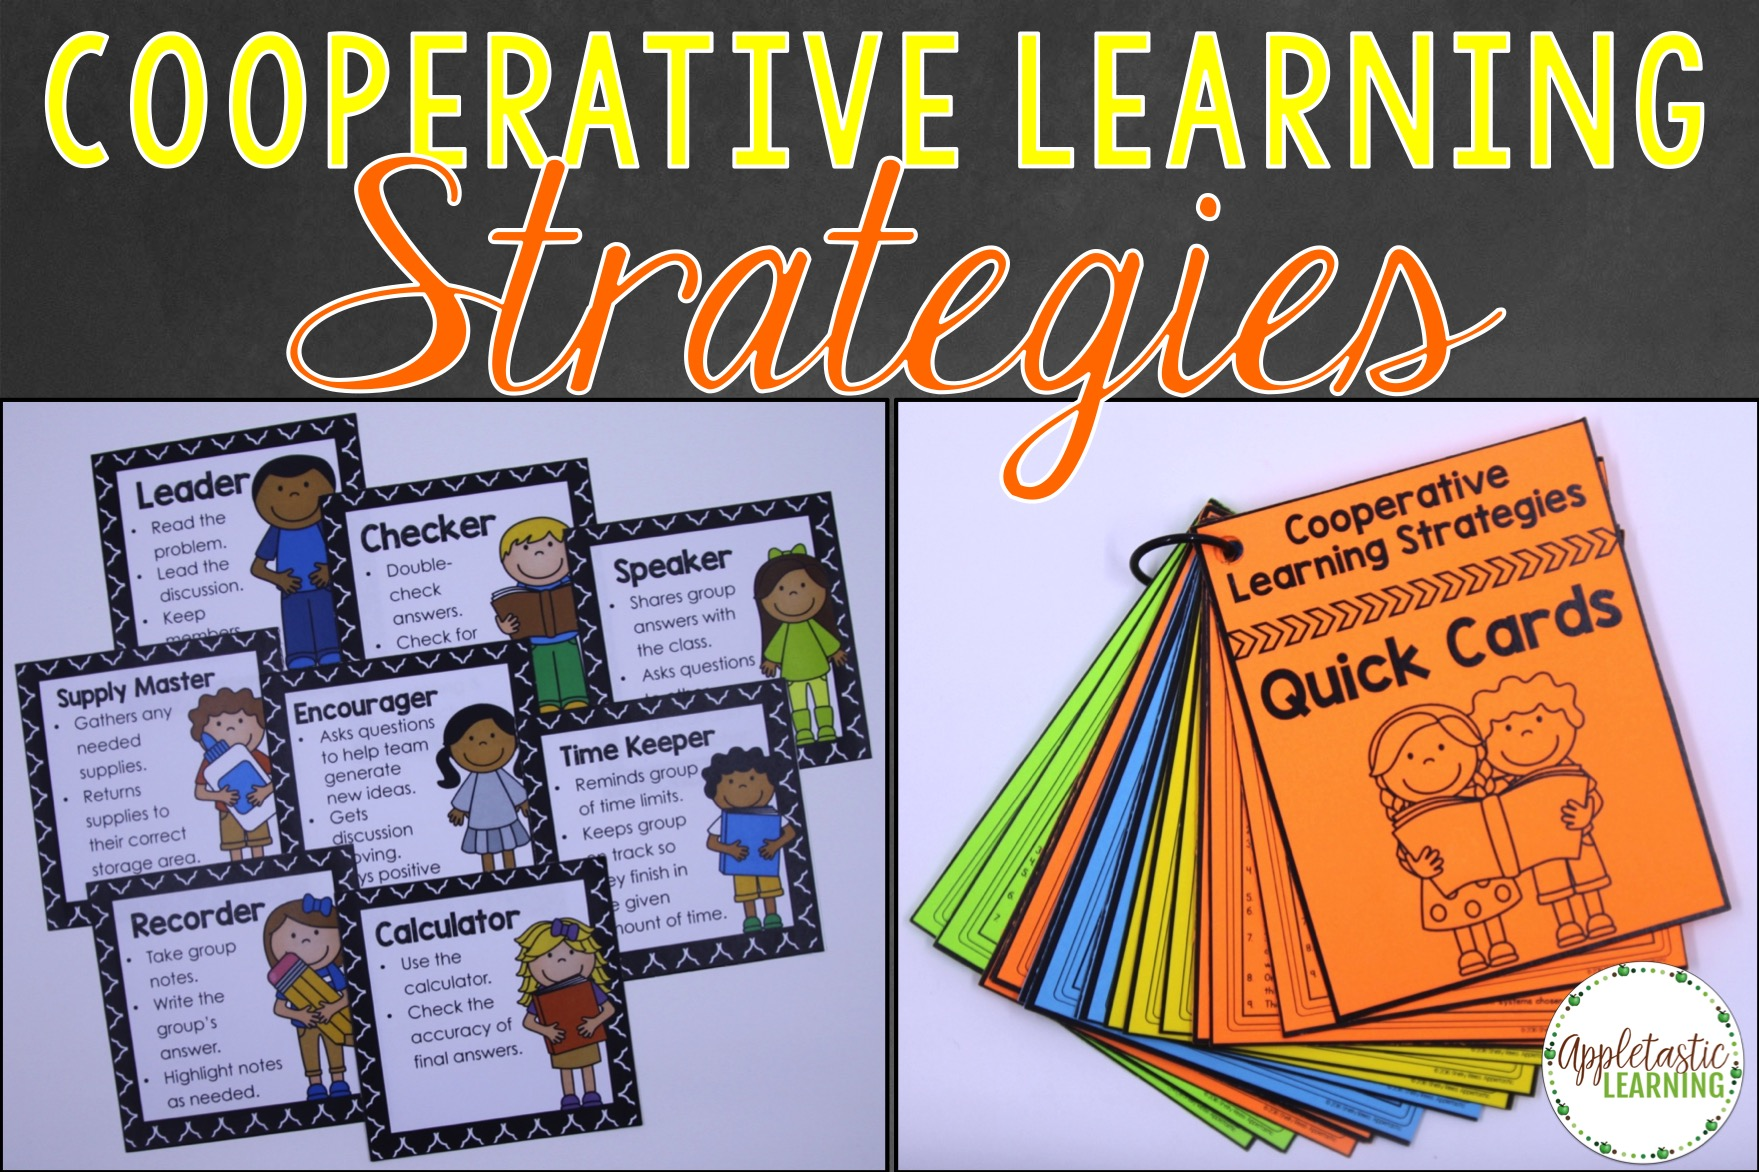 Collaborative Learning In The Classroom : Cooperative learning strategies appletastic